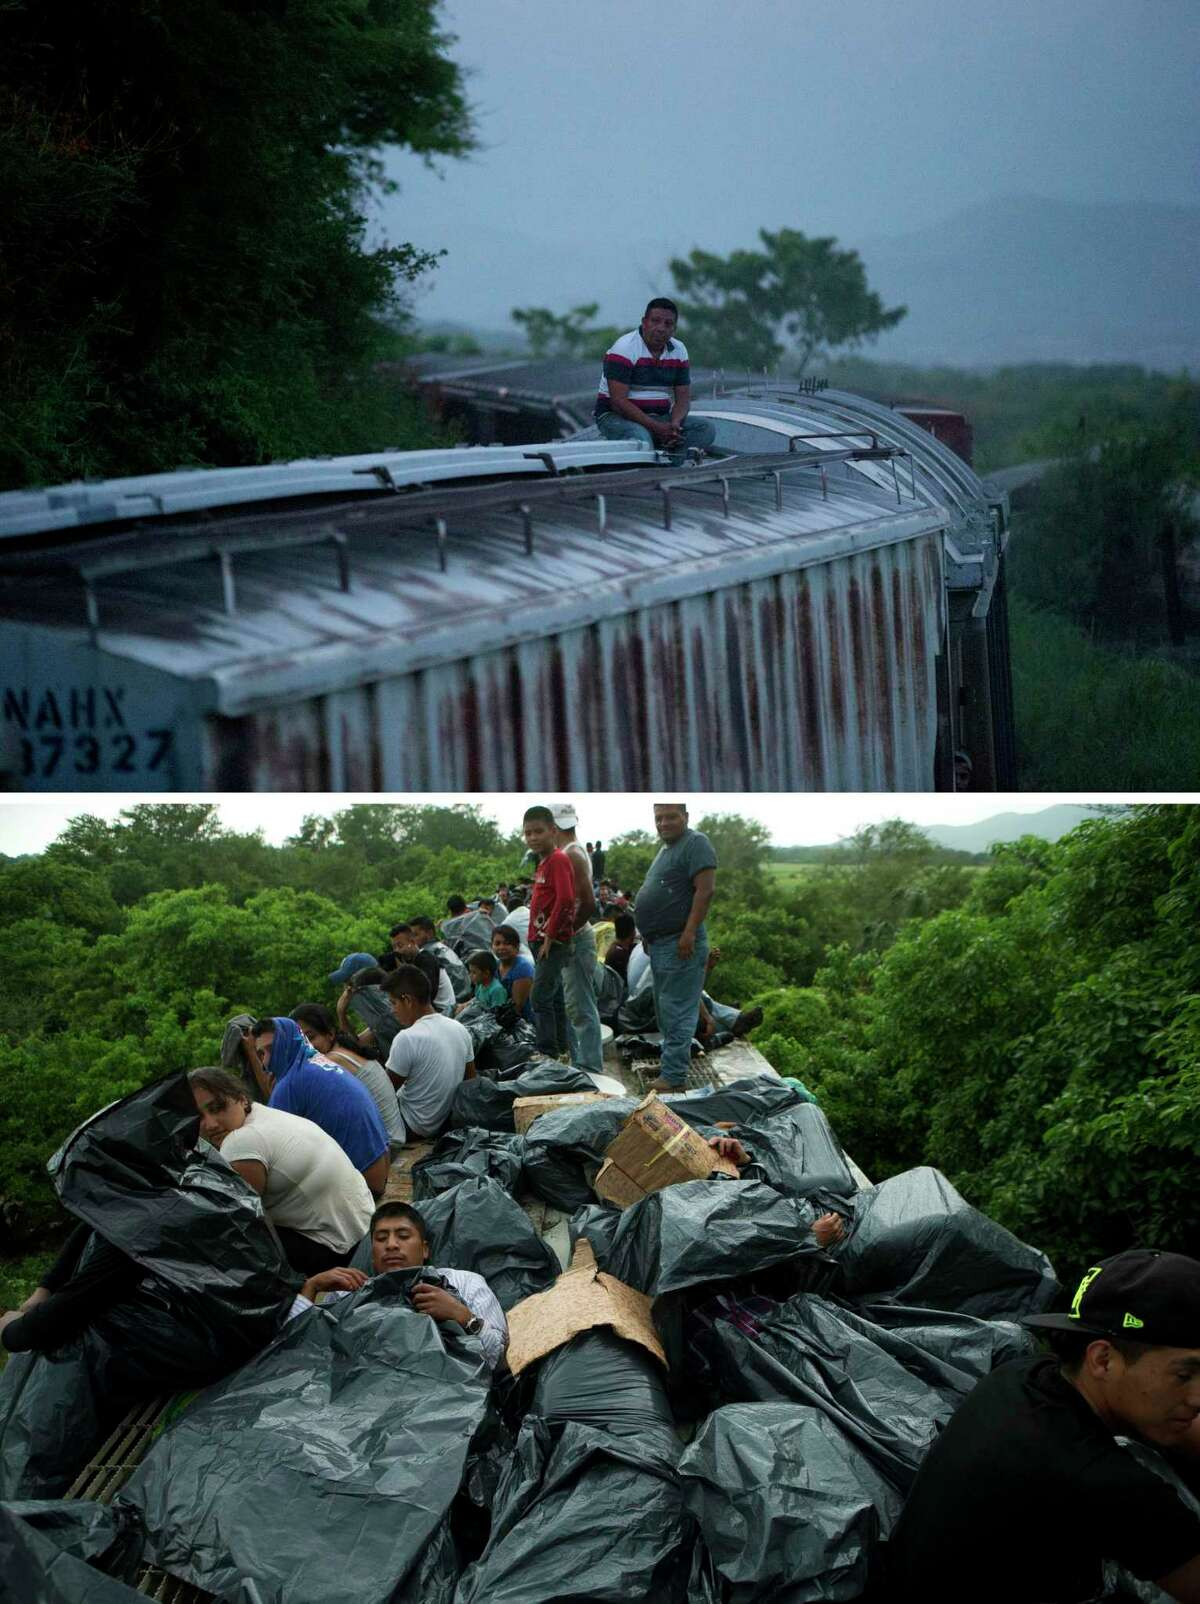 This combo of two pictures taken in 2014 in southern Mexico shows a lone Central American migrant riding a freight train heading north on Aug. 26 from Arriaga in Chiapas state, to Ixtepec in Oaxaca state, top picture, and a train full of Central American migrants near Reforma de Pineda, in Chiapas state on June 20. Mexico's largest crackdown in decades on illegal migration has decreased the flow of Central Americans trying to reach the United States, and has dramatically cut the number of child migrants and families, according to officials and eyewitness accounts along the perilous route. (AP Photo/Rebecca Blackwell)